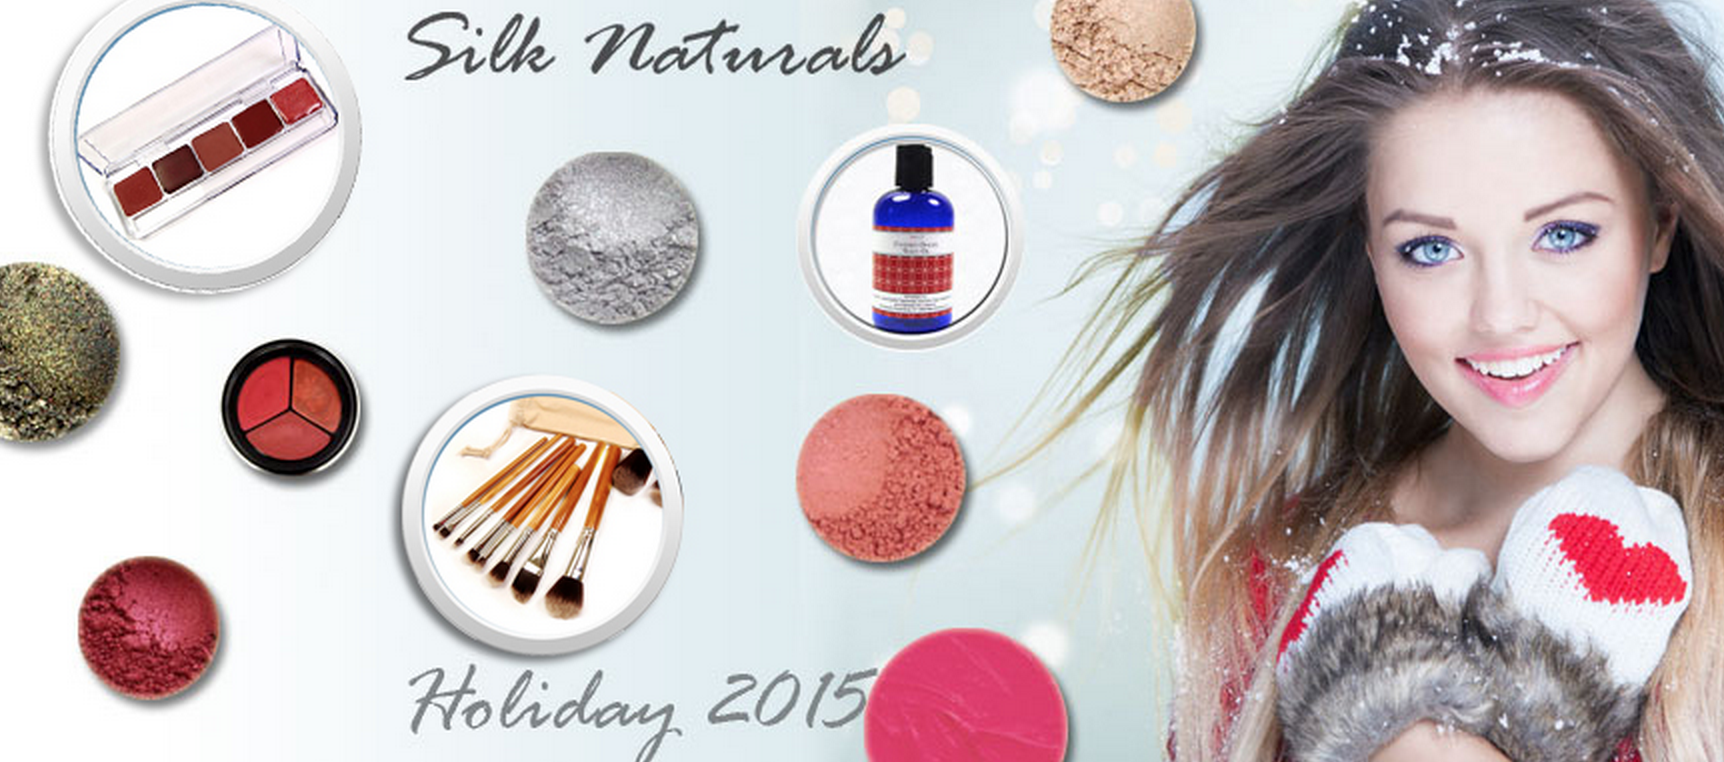 silk naturals holiday 2015 collection